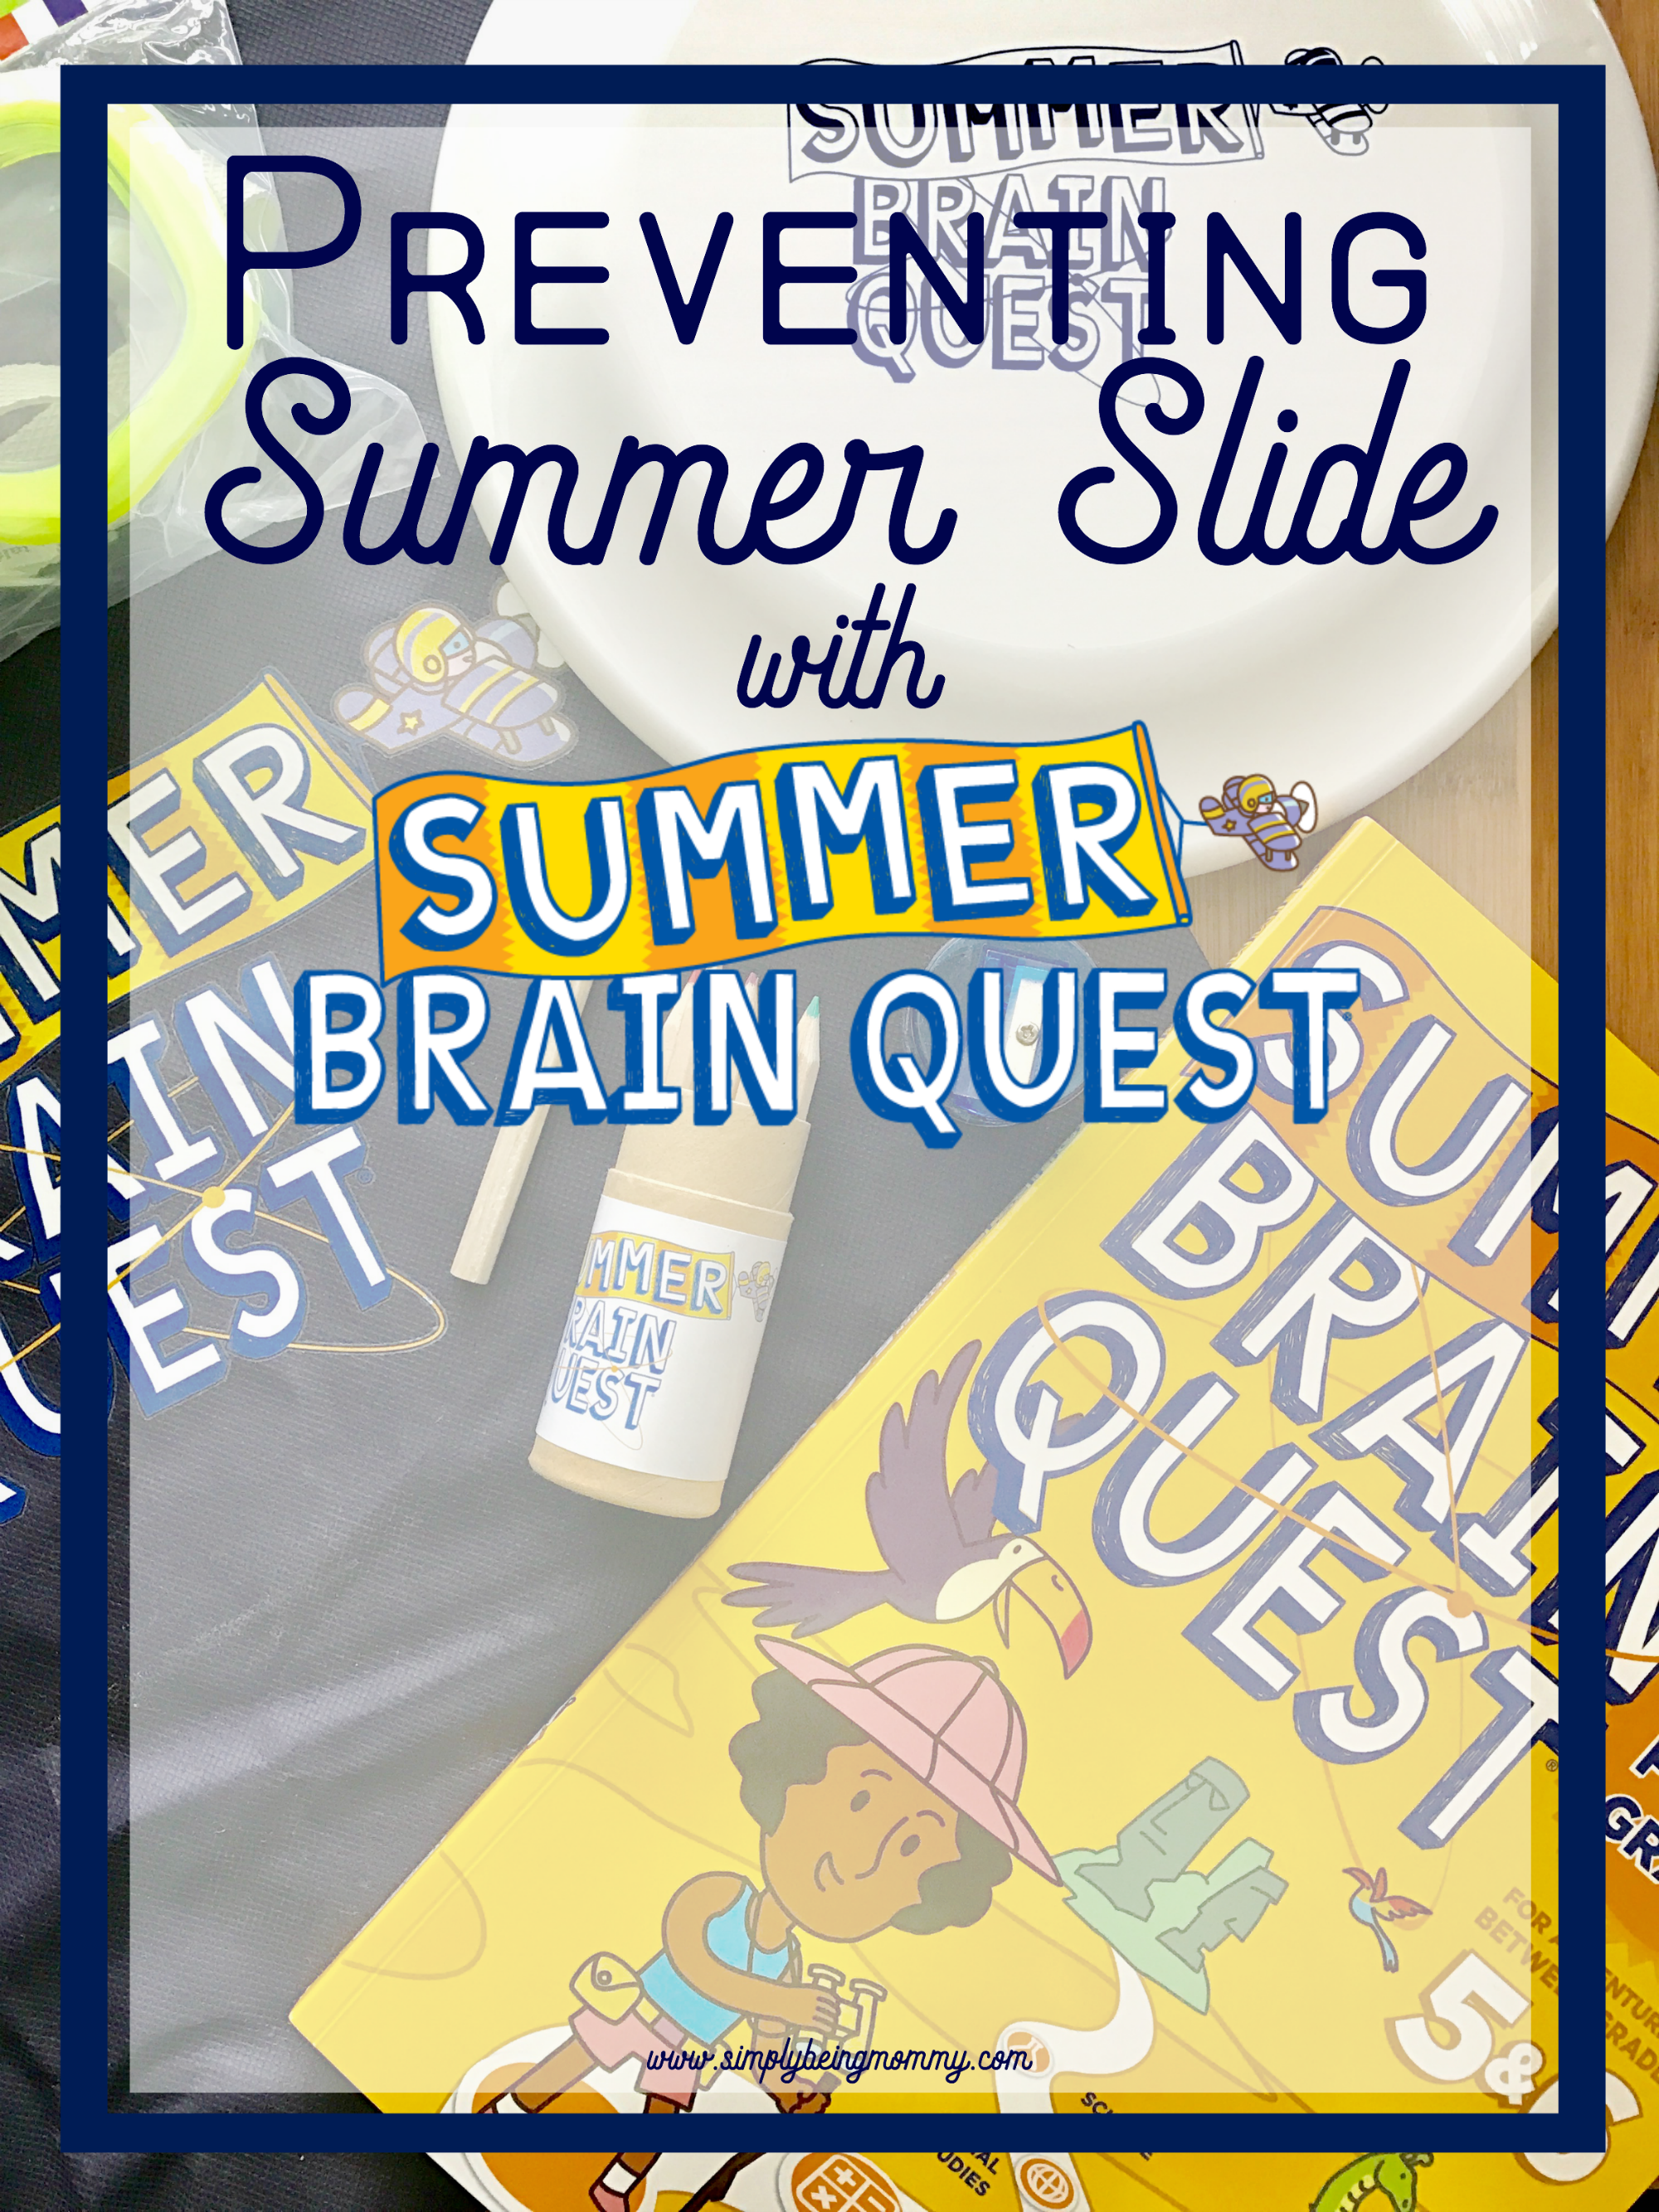 Preventing summer slide is so important for your children. Learn how you can use Summer Brain Quest to keep what they've learned through the summer.